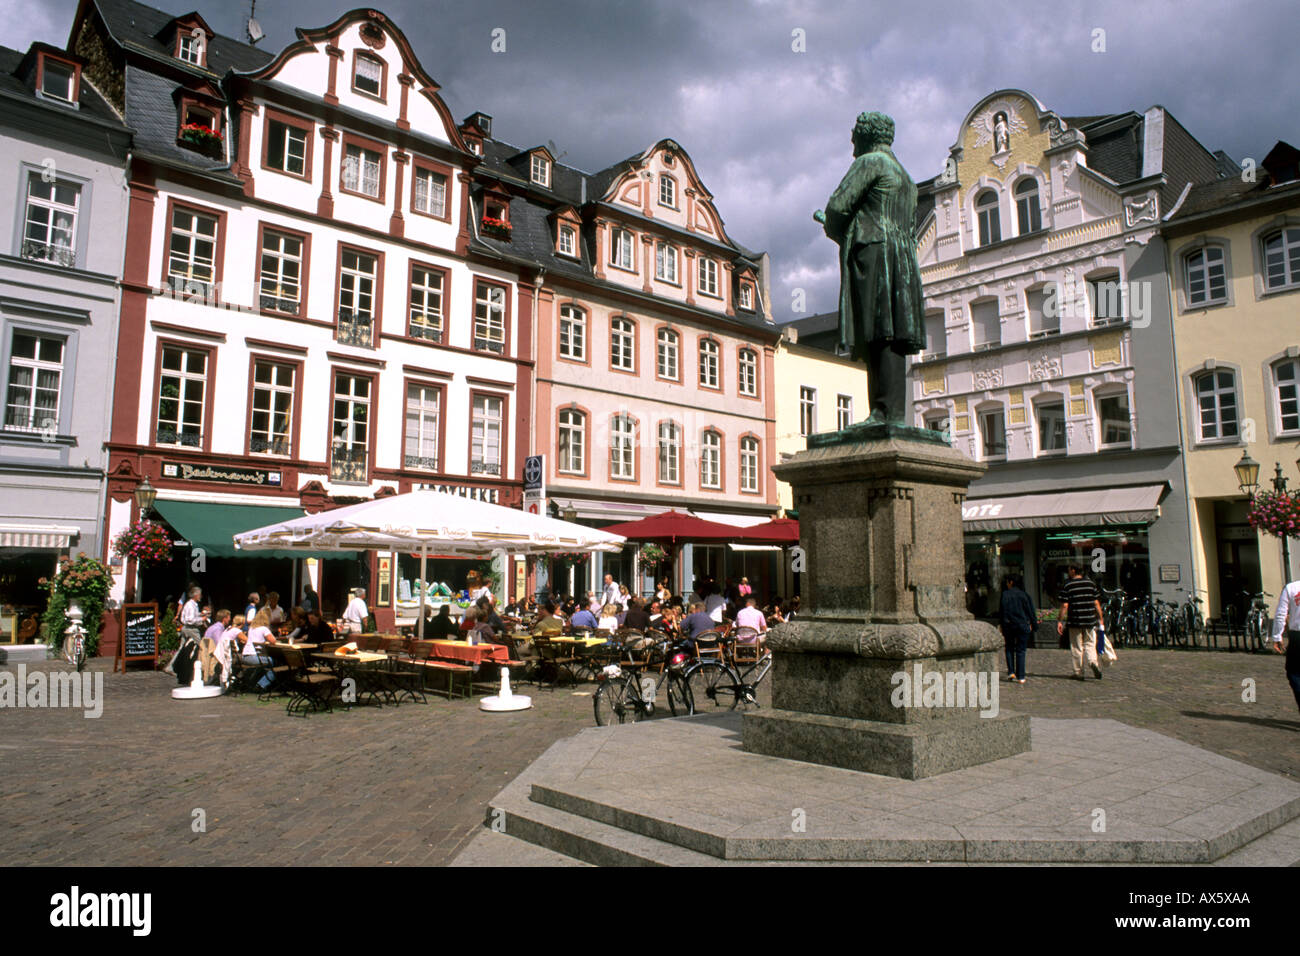 germany koblenz old town center with buildings cafes and statue of stock photo 5465769 alamy. Black Bedroom Furniture Sets. Home Design Ideas